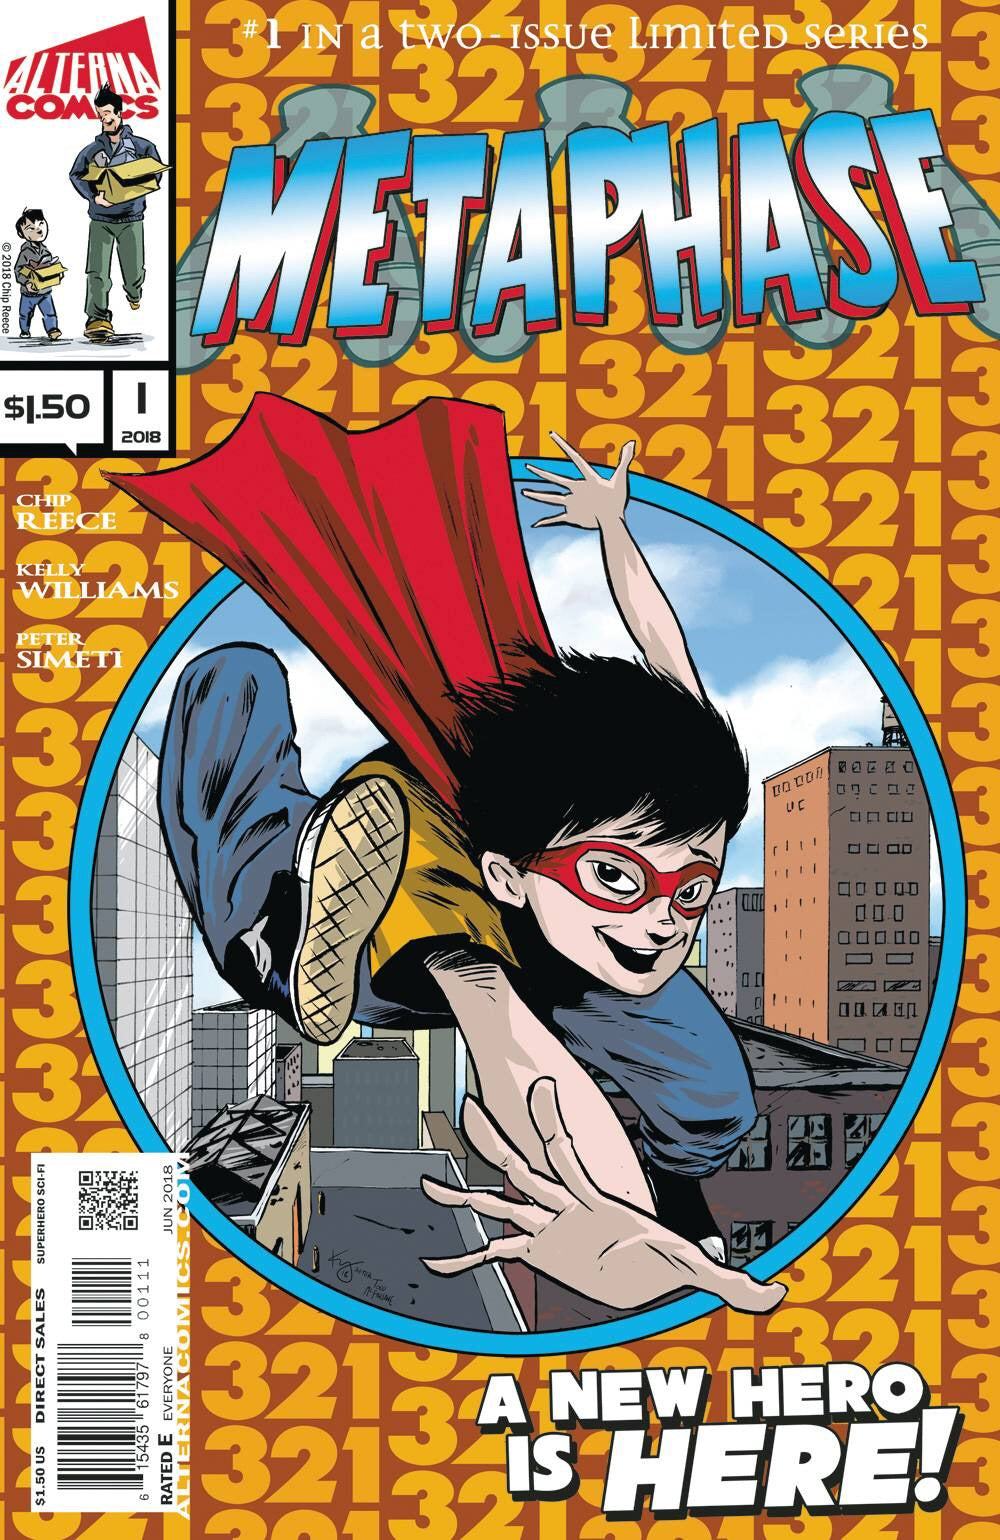 METAPHASE #1 (OF 2) ASM300 COVER SWIPE (ADVANCE ORDER)